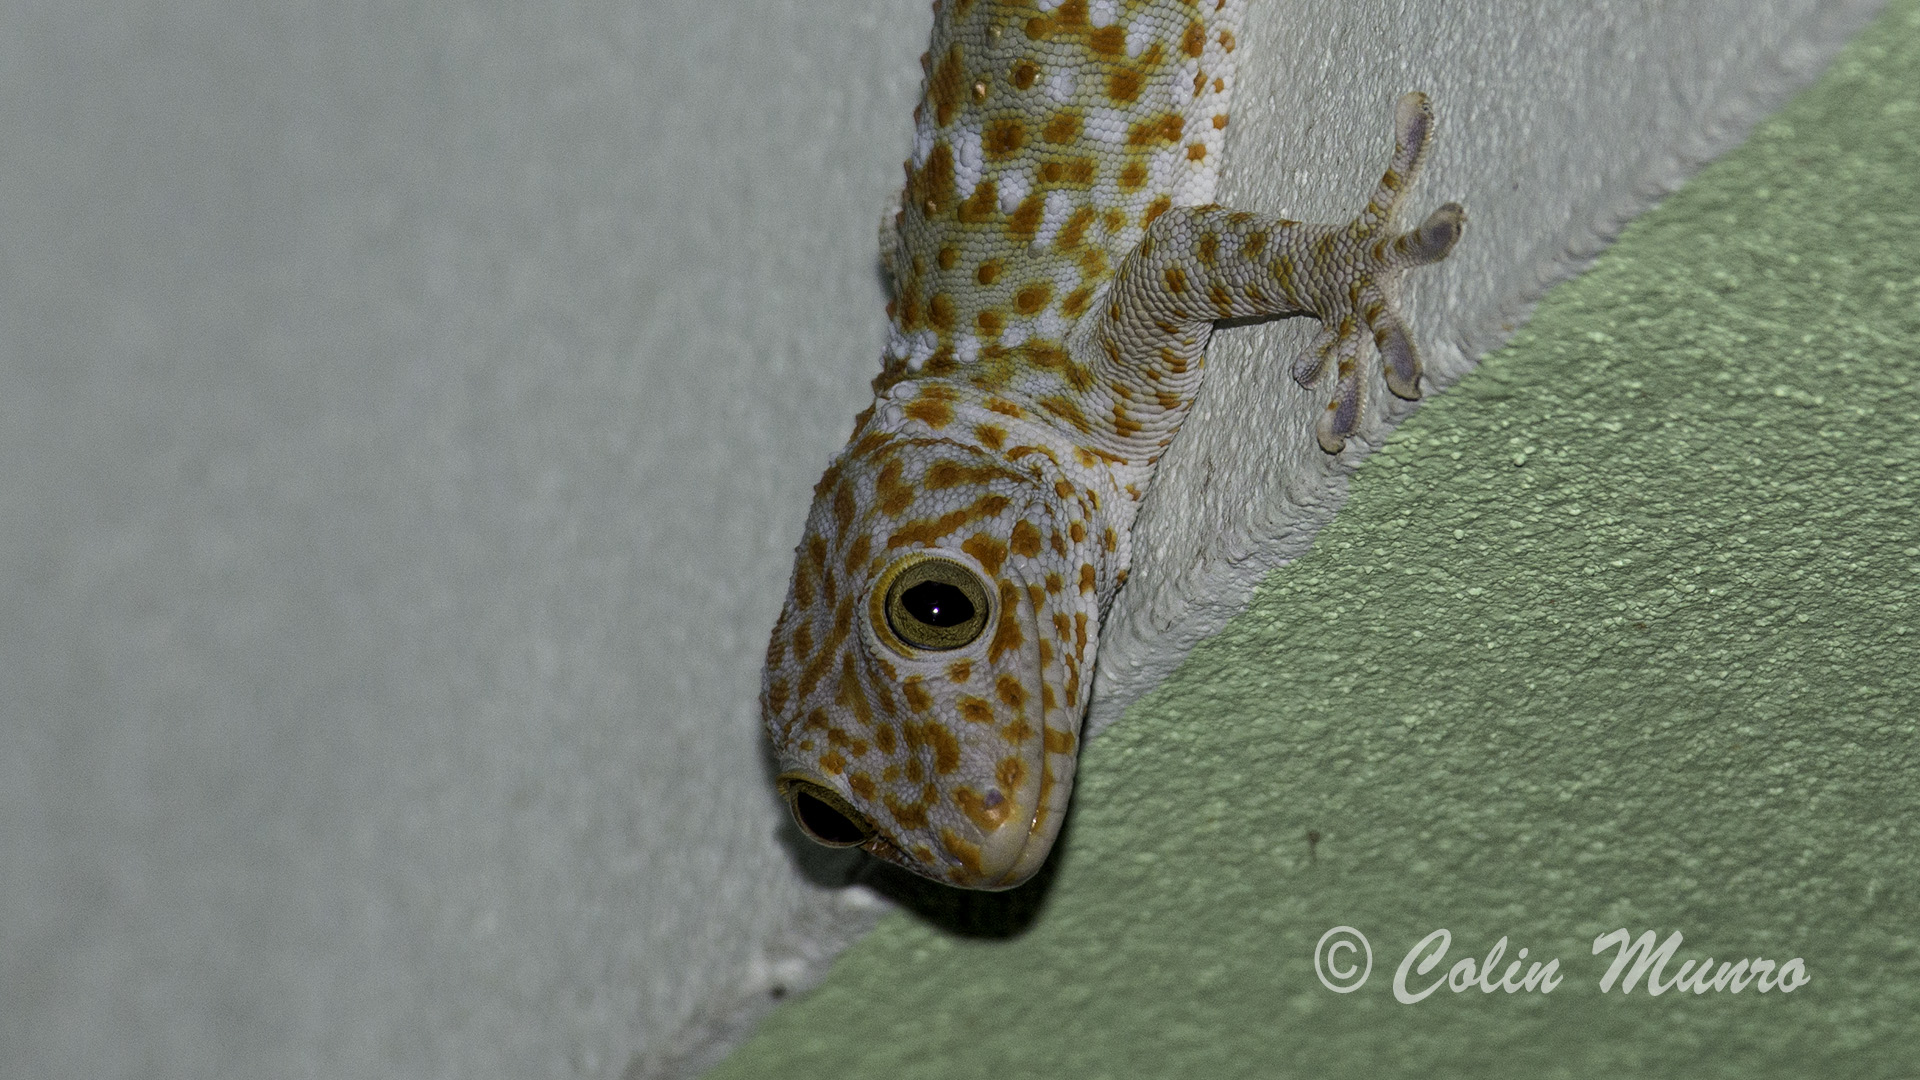 Tokay gecko on vertical wall © Colin Munro